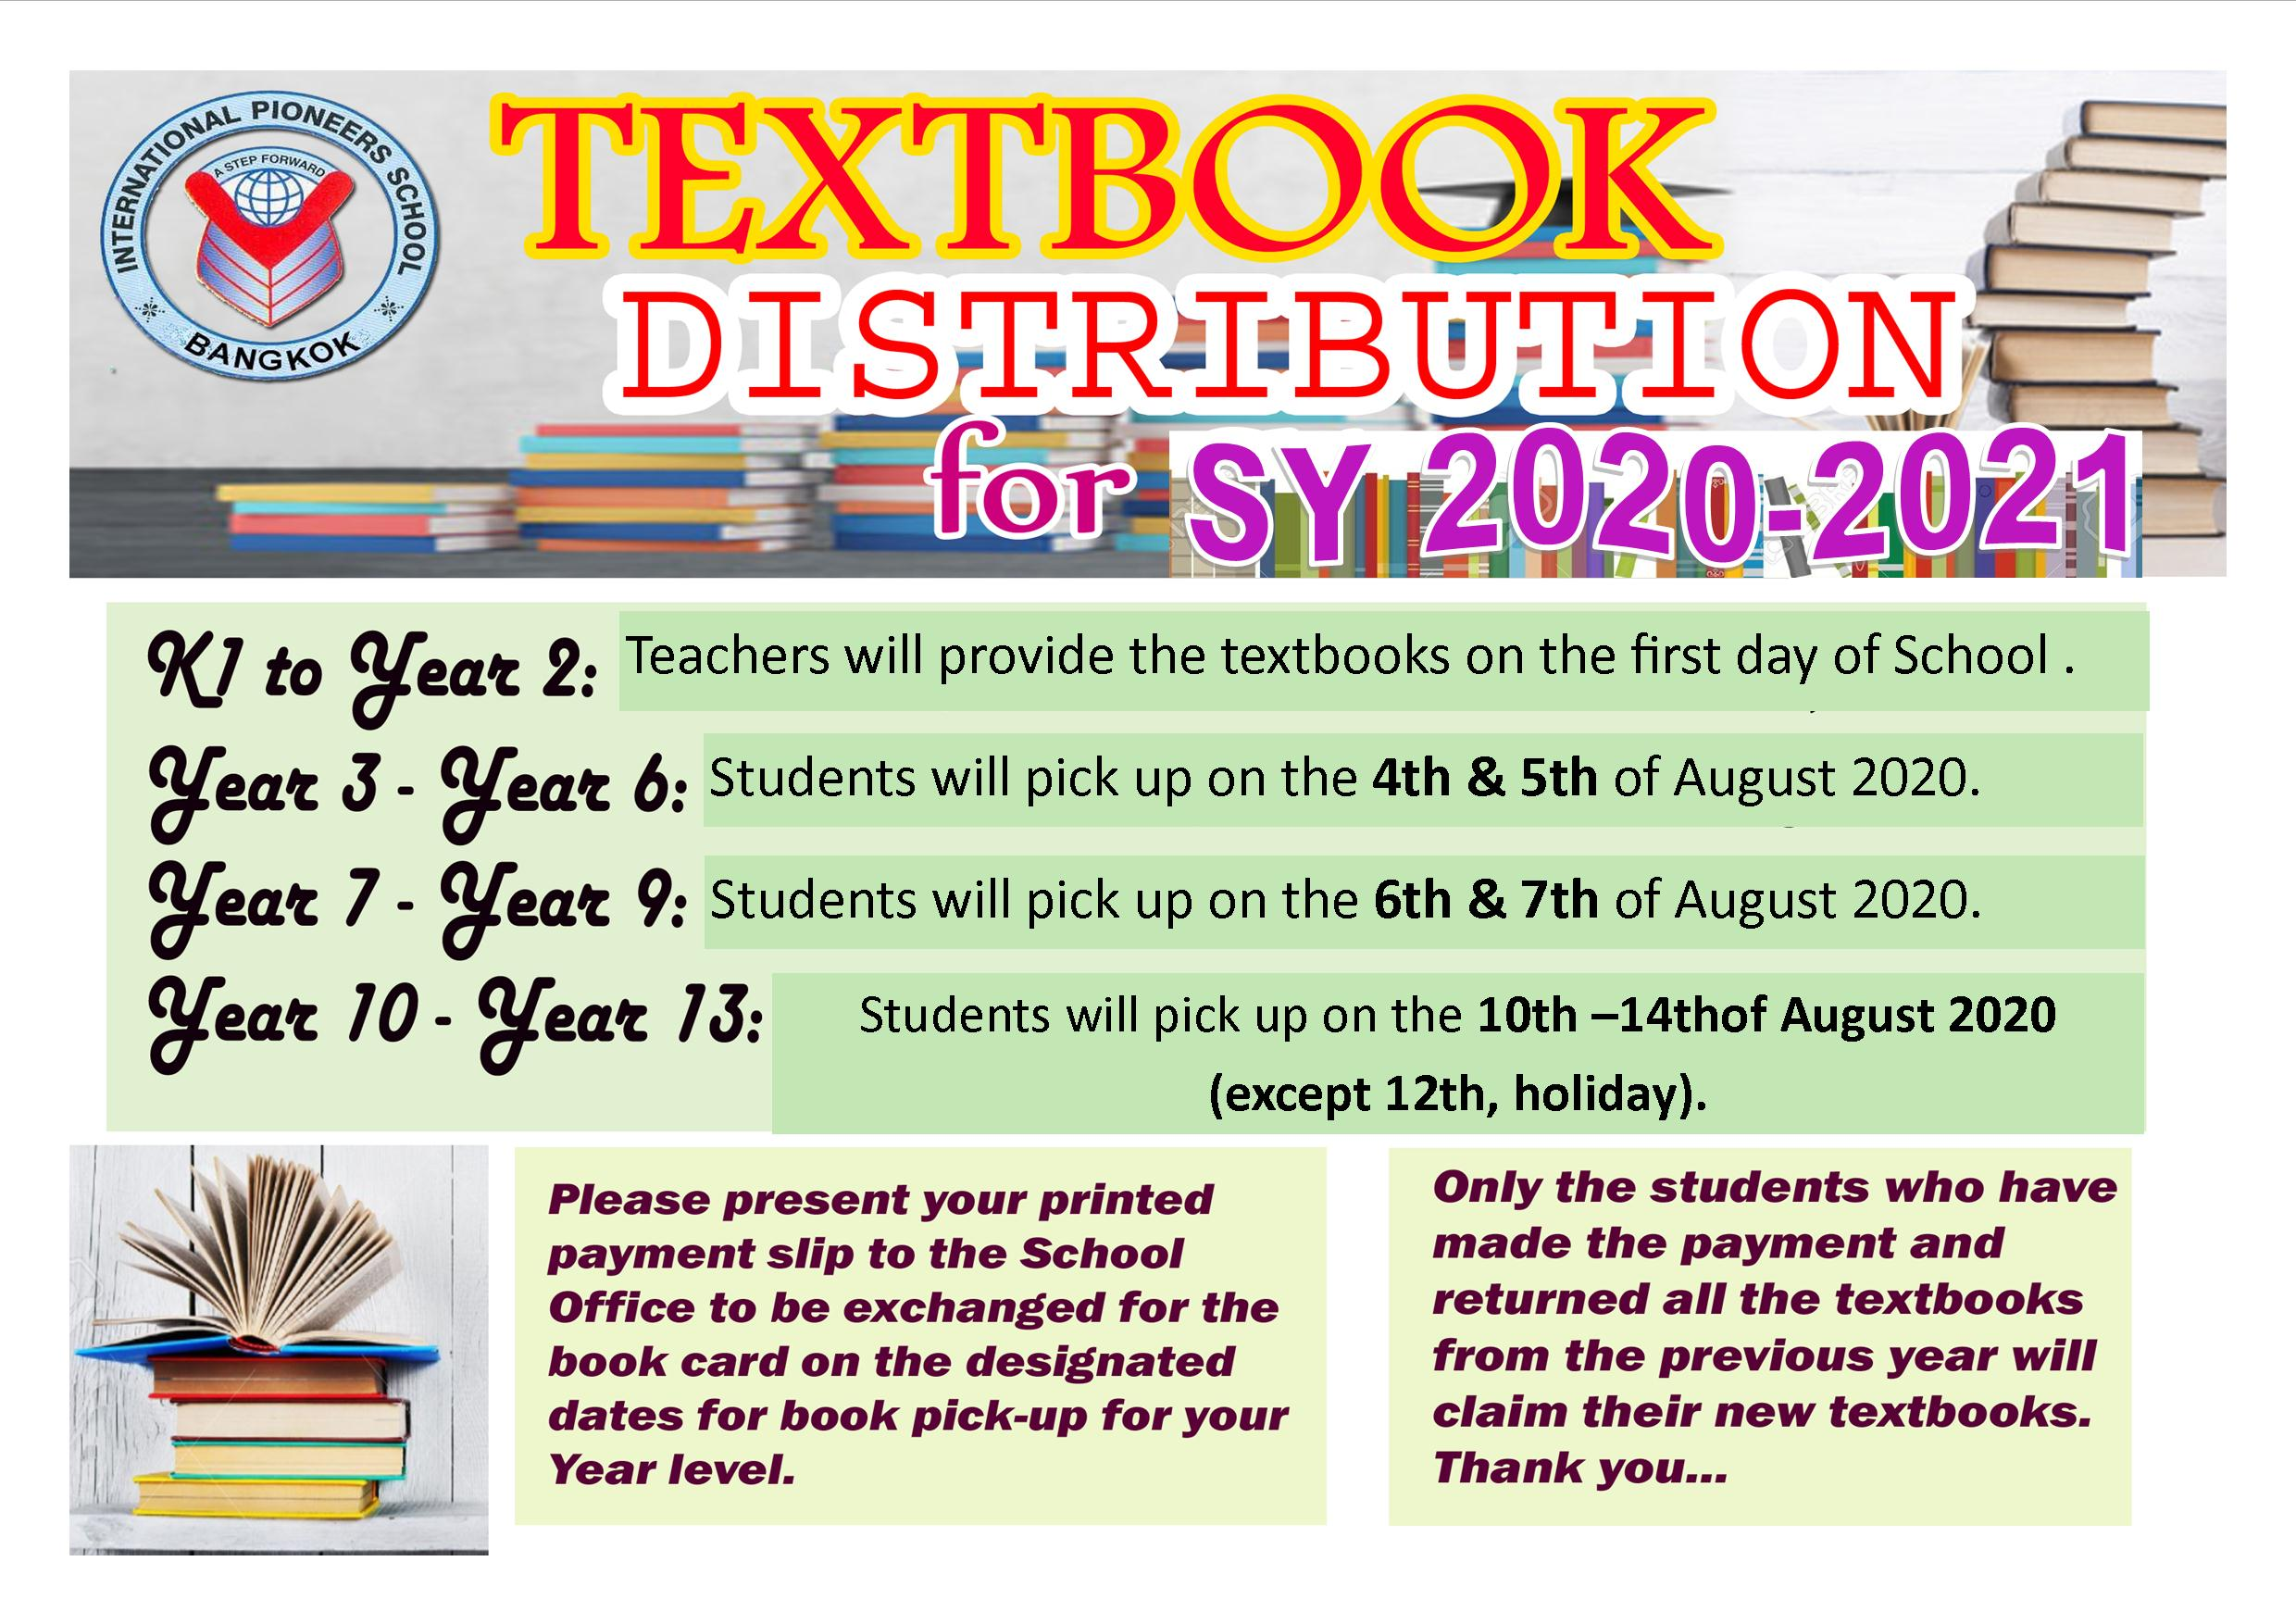 INTERNATIONAL PIONEERS SCHOOL TEXTBOOKS DISTRIBUTION S.Y. 2020-2021